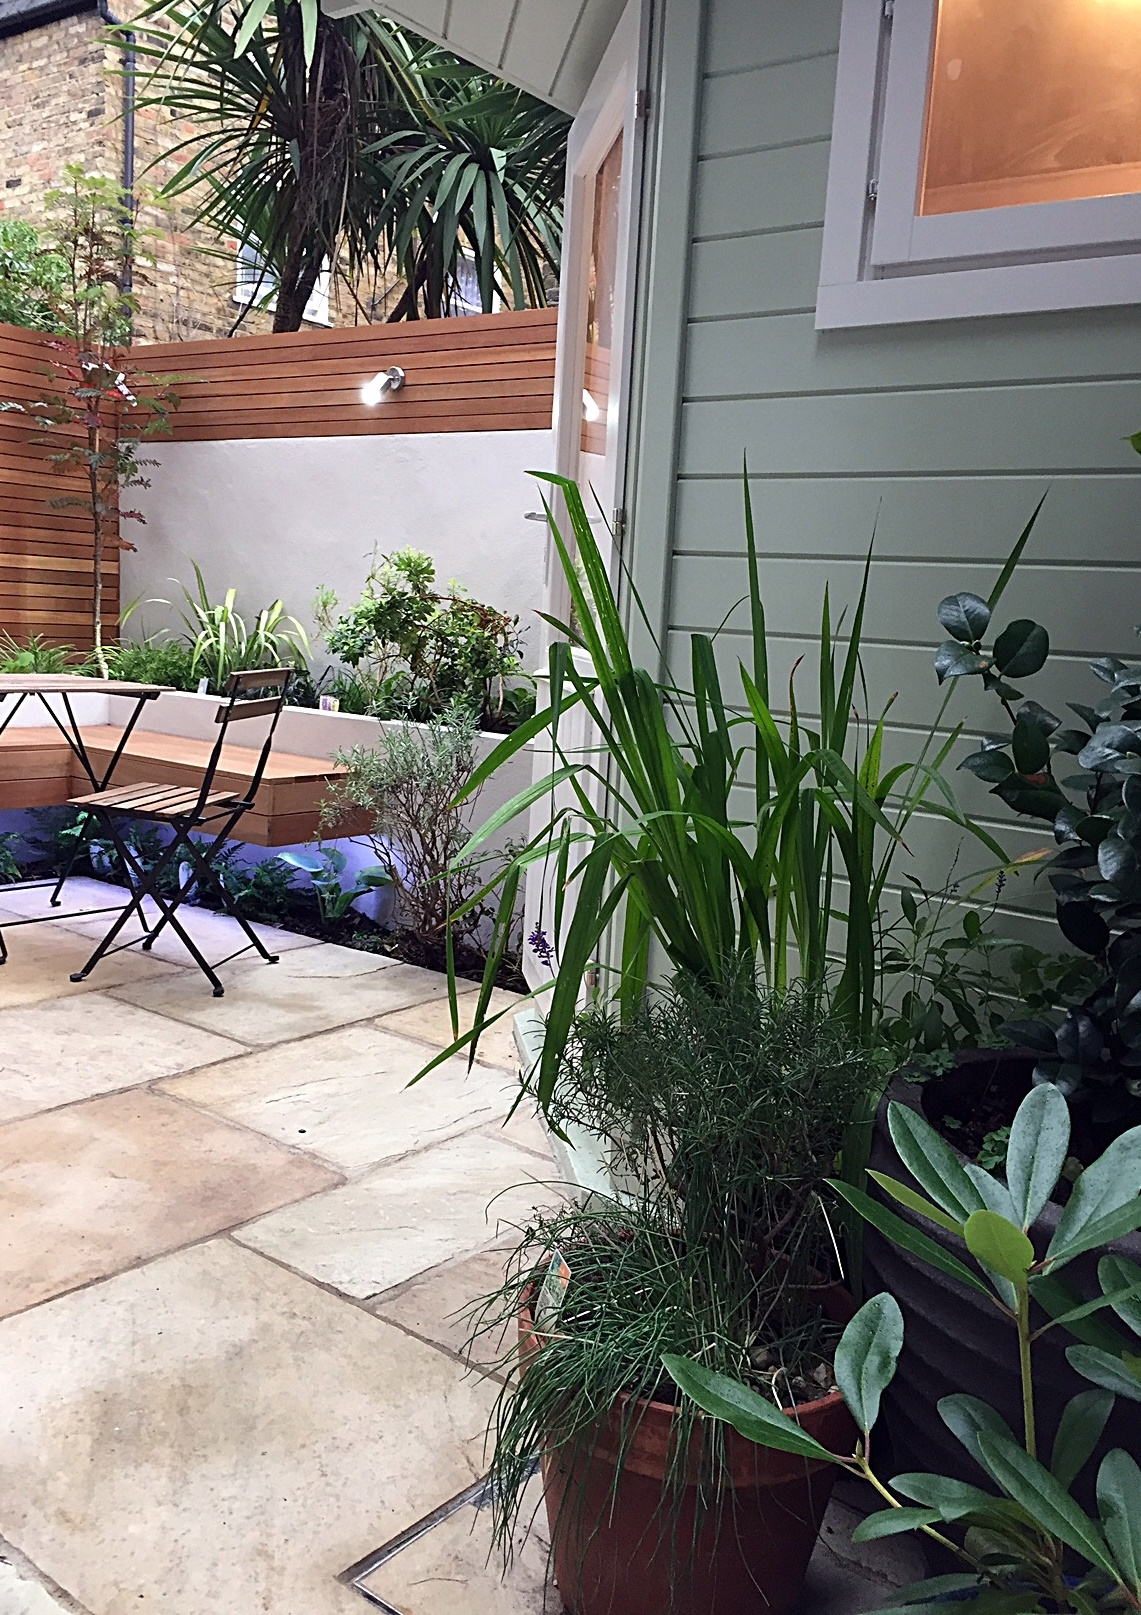 planting-lighting-paving-tile-path-hardwood-privacy-screen-low-maintenance-painting-white-london-balham-clapham-wandsworth